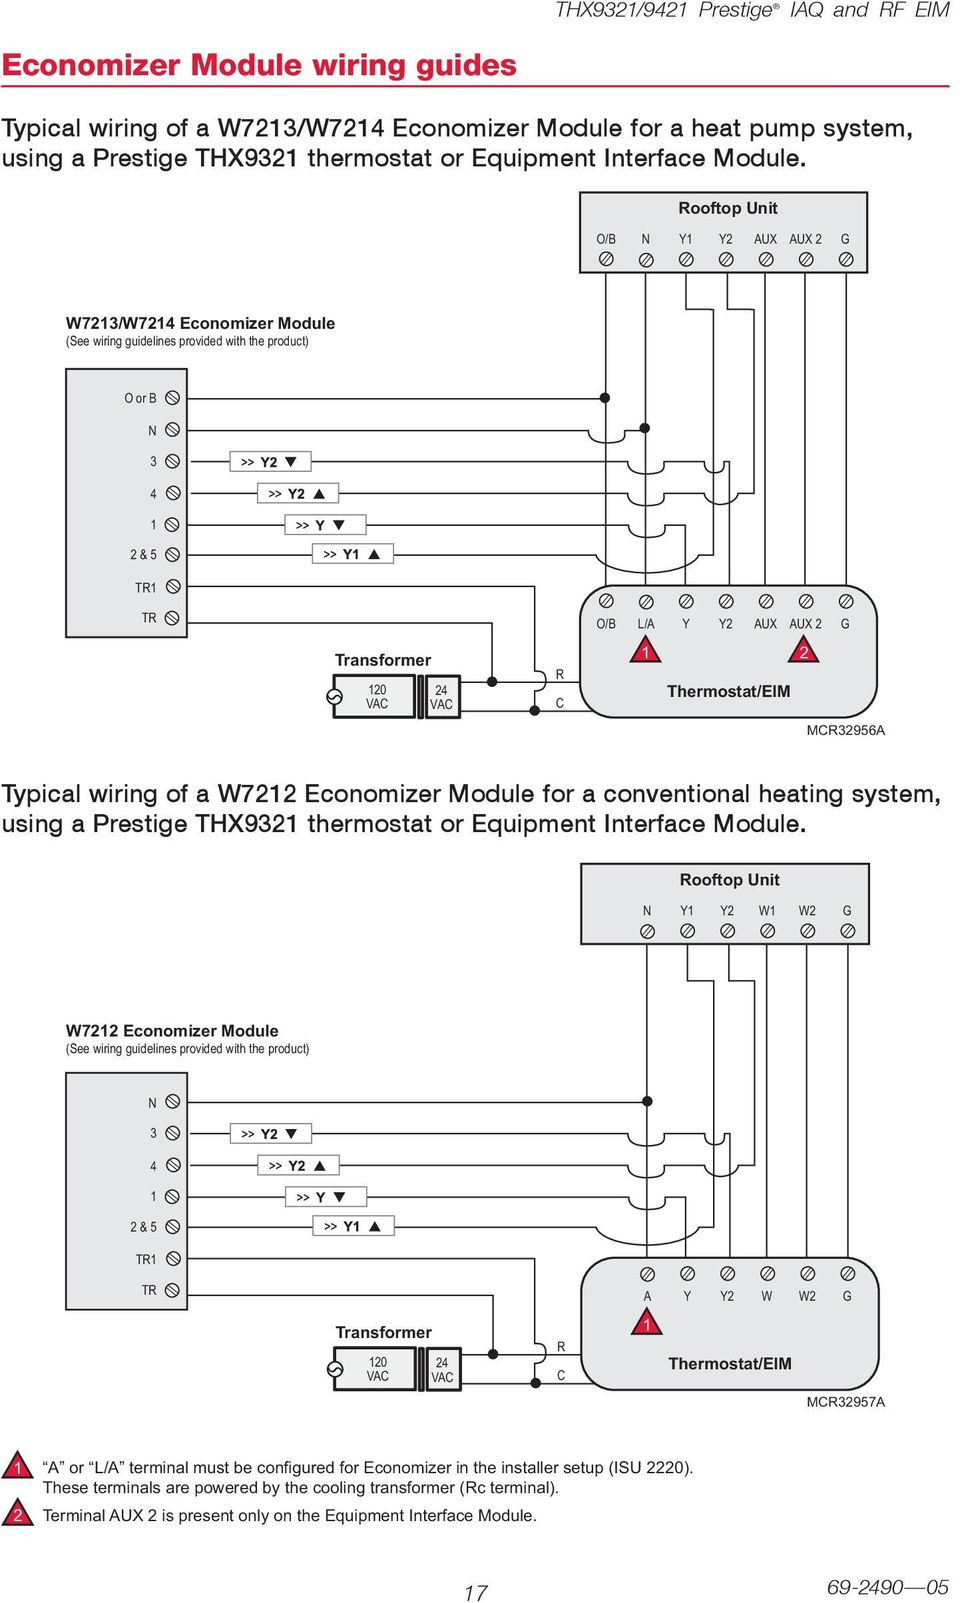 W7 Economizer Module for a conventional heating system, using a Prestige THX9 thermostat or Equipment Interface Module.